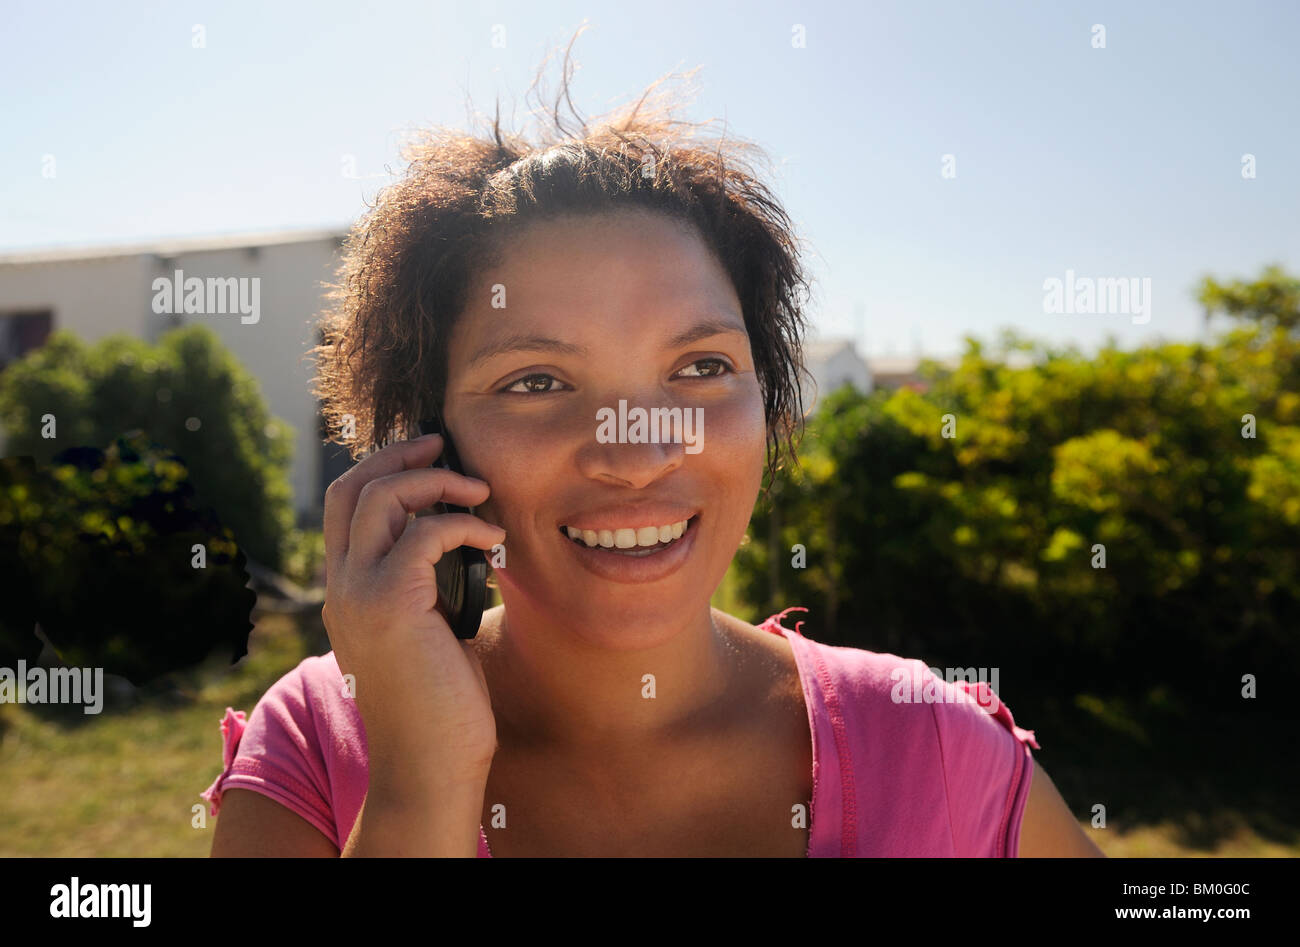 Woman using mobile phone, St Francis Bay, Sea Vista, Eastern Cape Province, South Africa - Stock Image